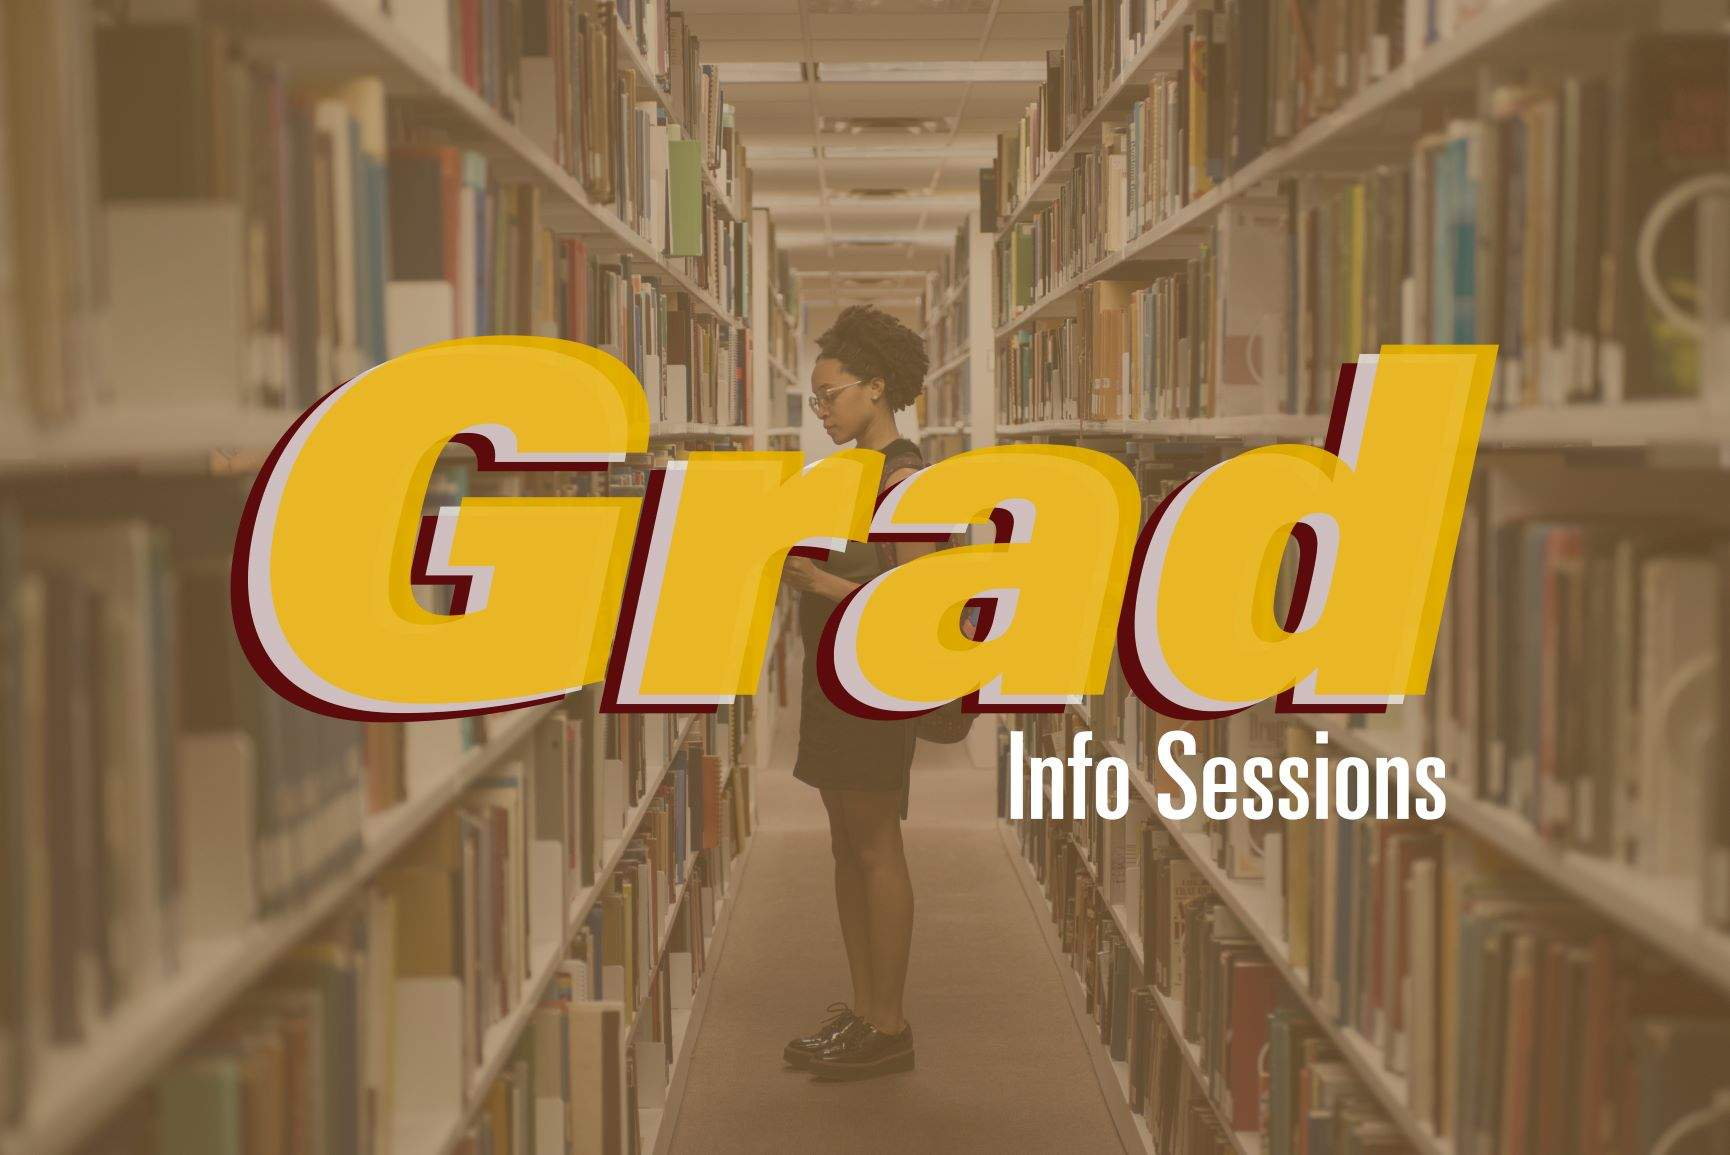 Grad info sessions logo with student in library background